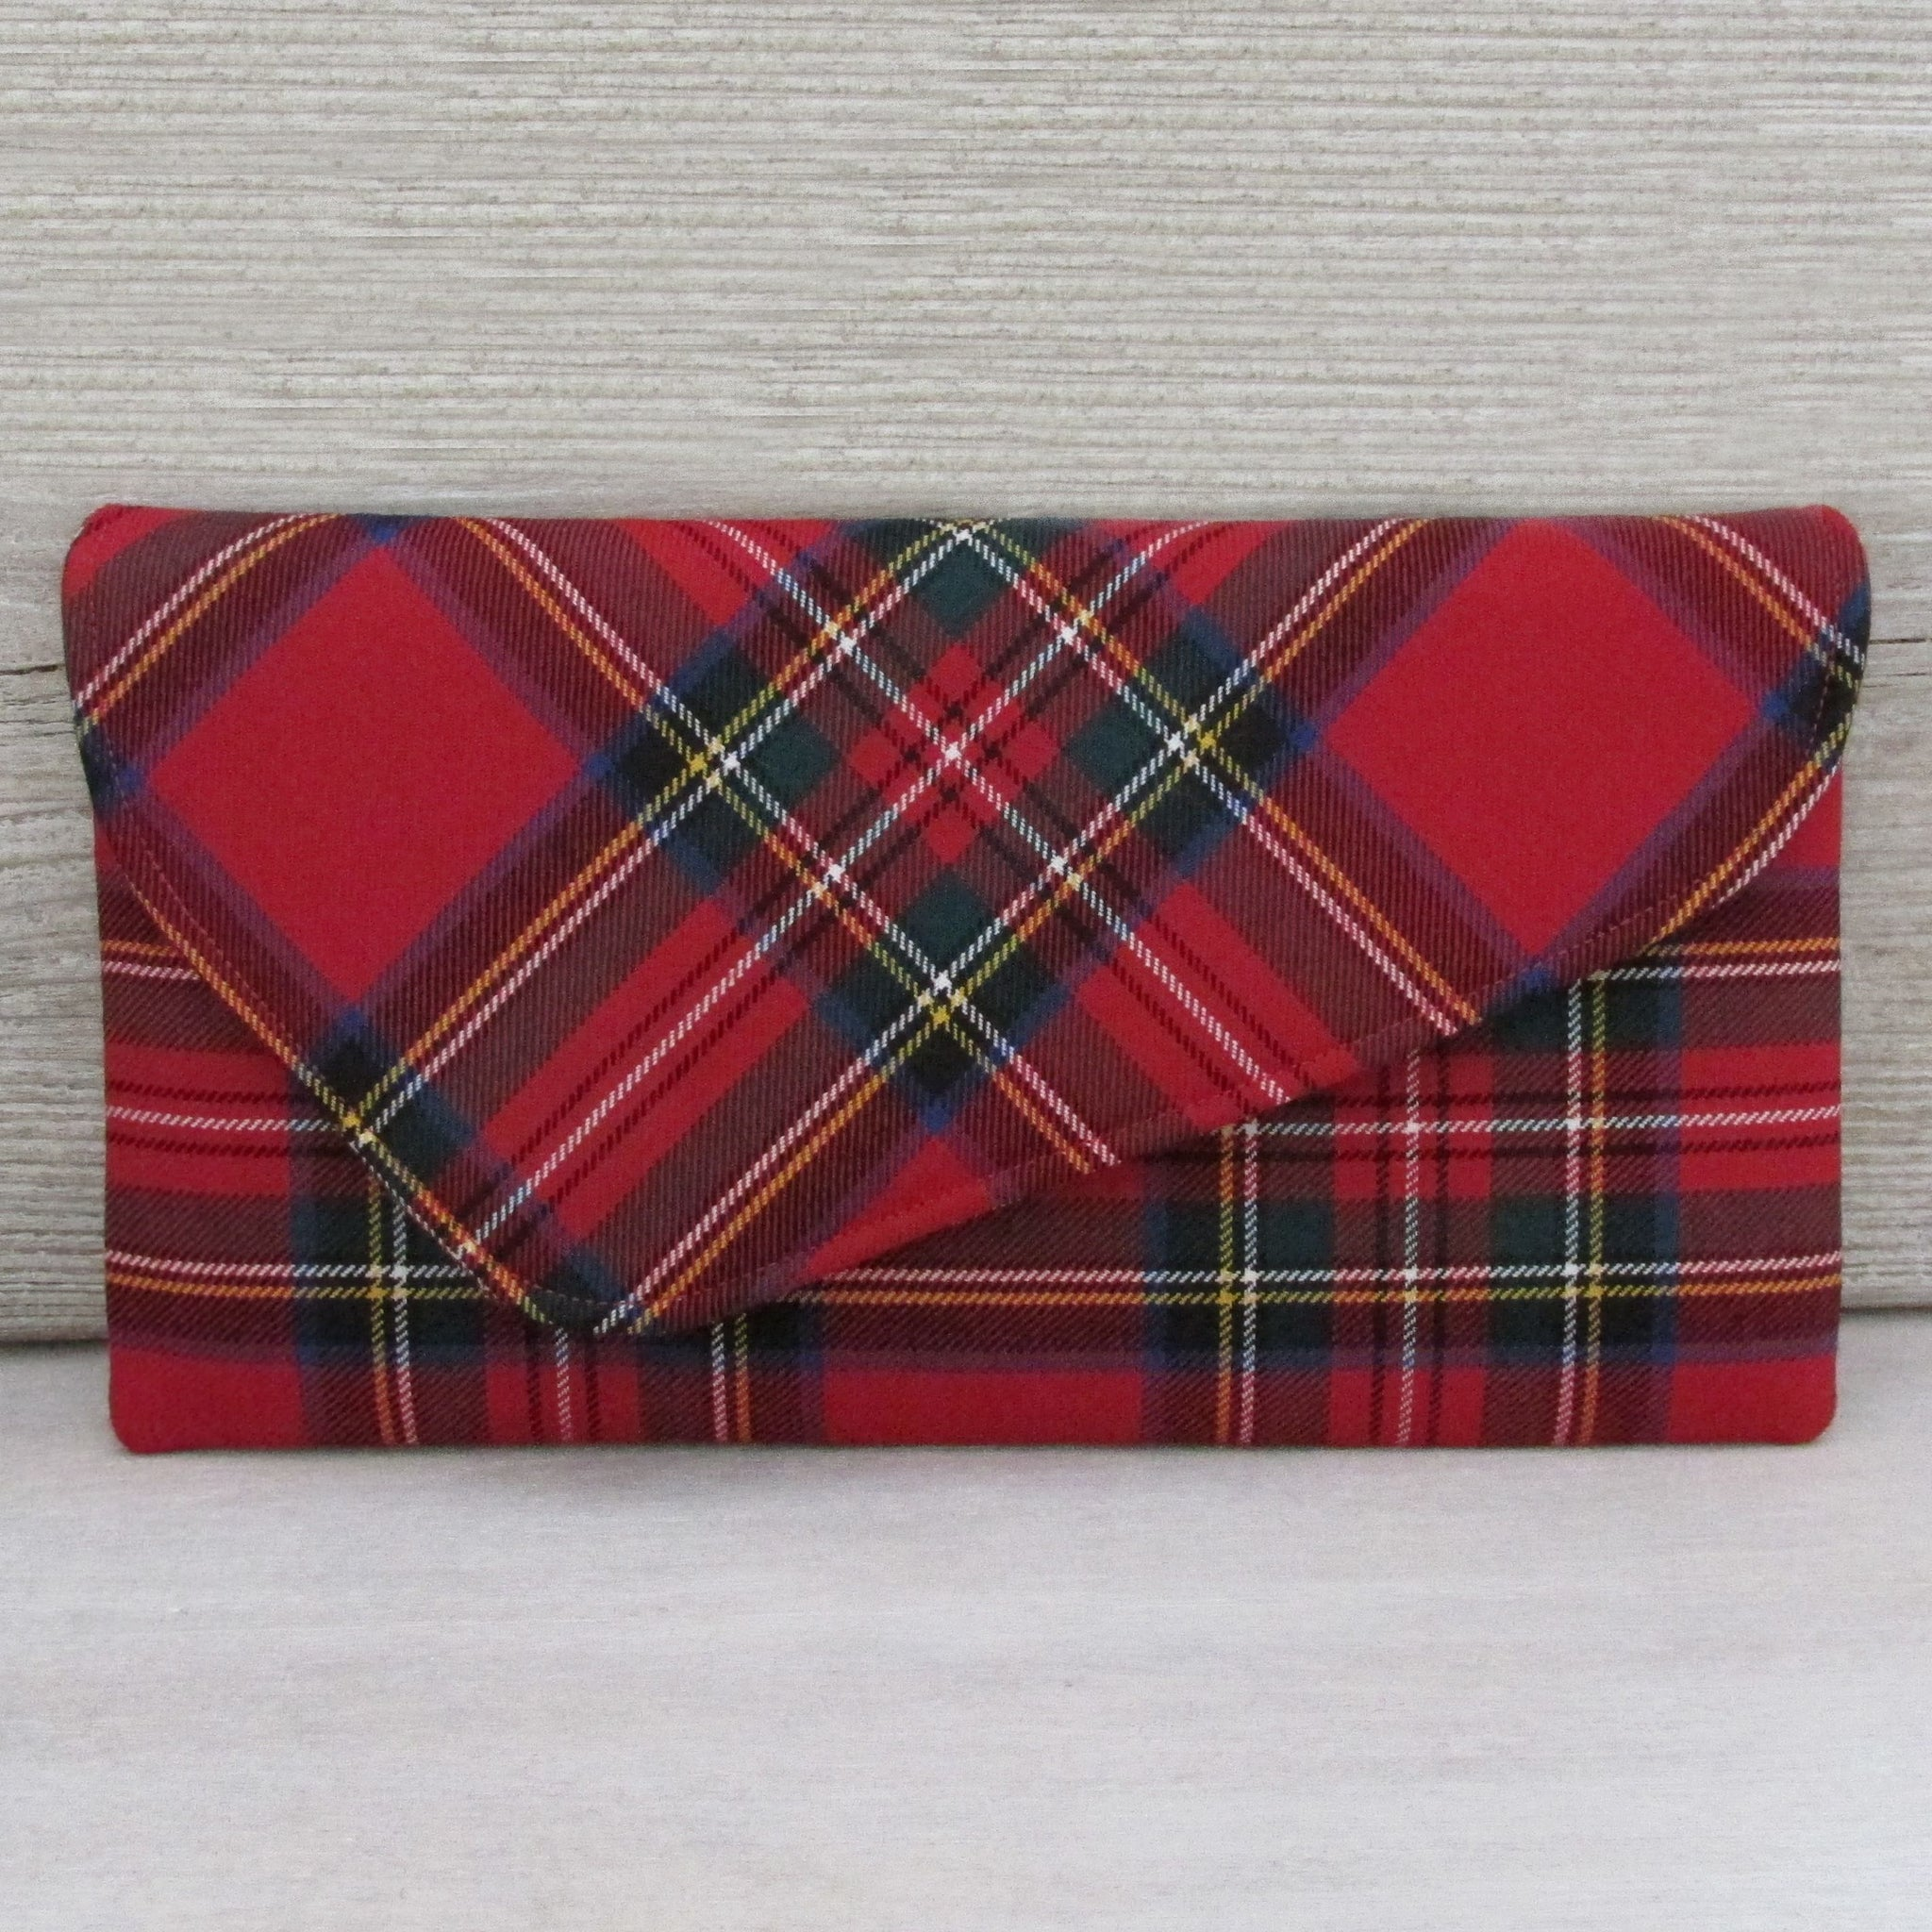 Royal Stewart Asymmetric Clutch Bag